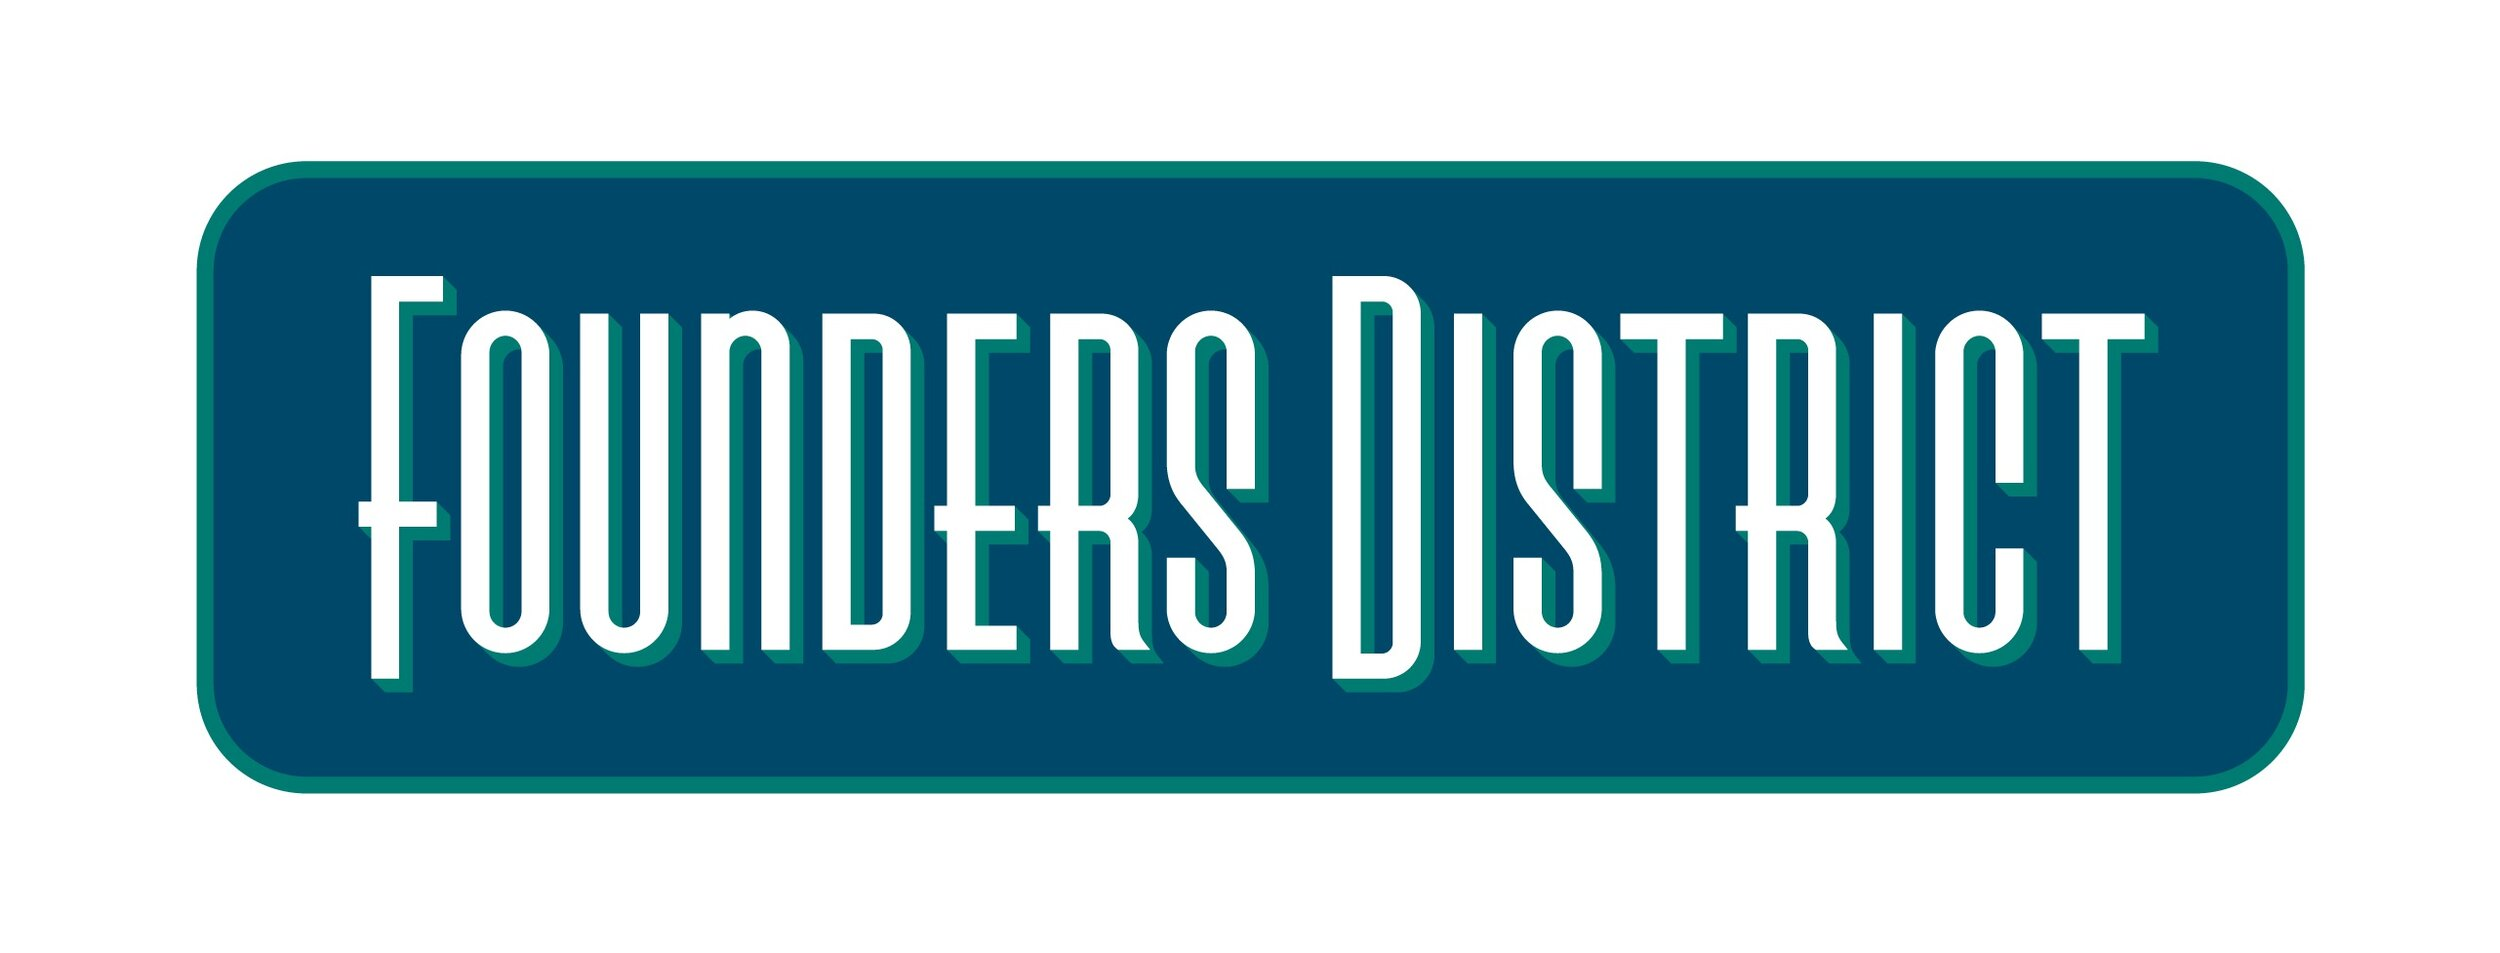 Founders District sign topper logo.jpg